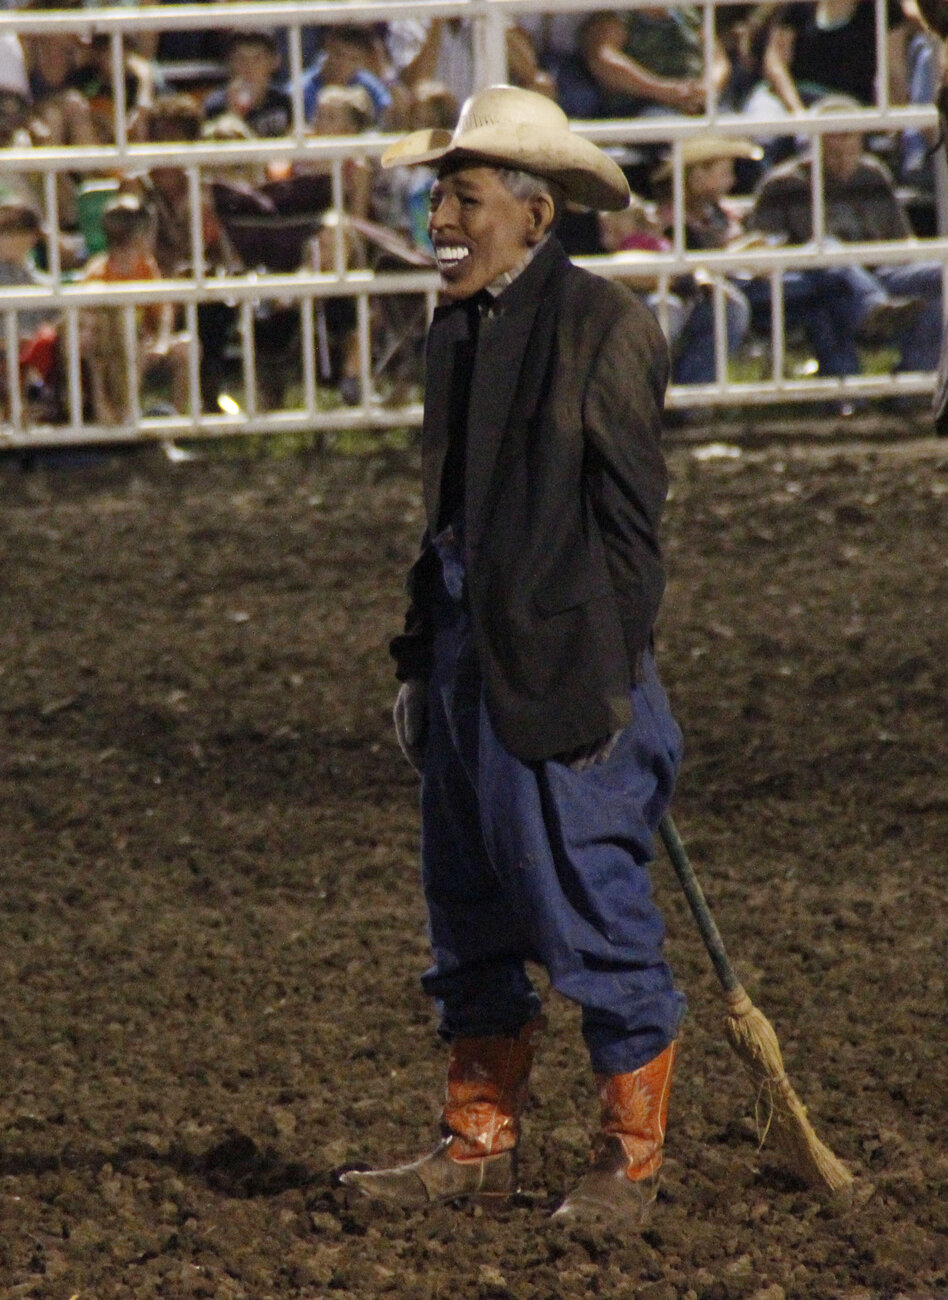 A photo taken of the clown who wore a mask resembling President Obama during a rodeo Saturday at the Missouri State Fair.